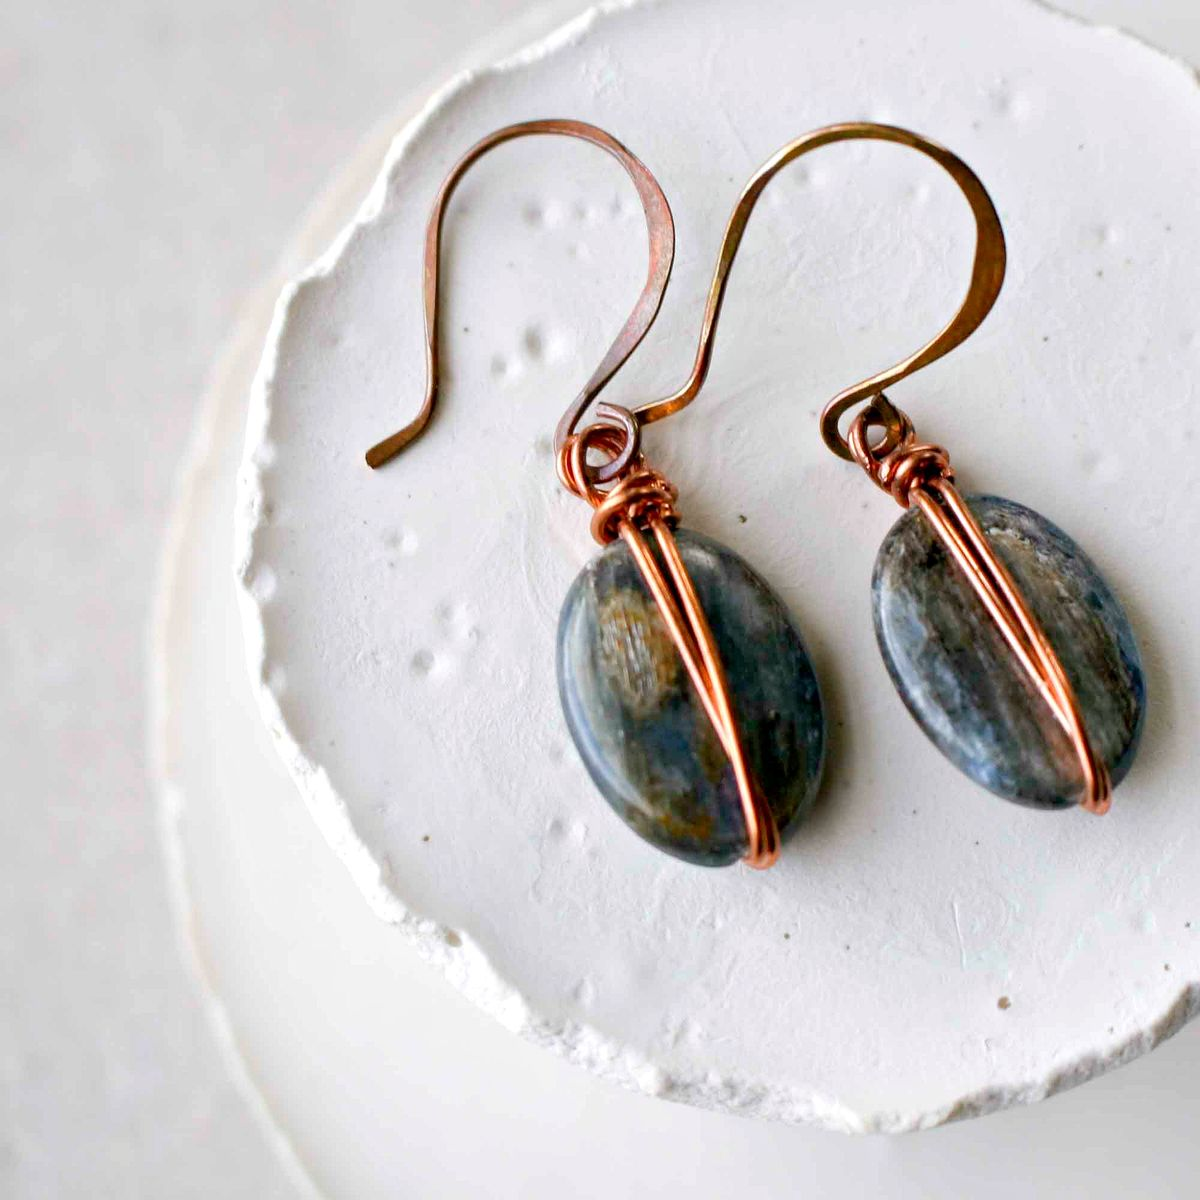 Icy Blue Kyanite Dangle Earrings with Copper Forged Earwires - product image